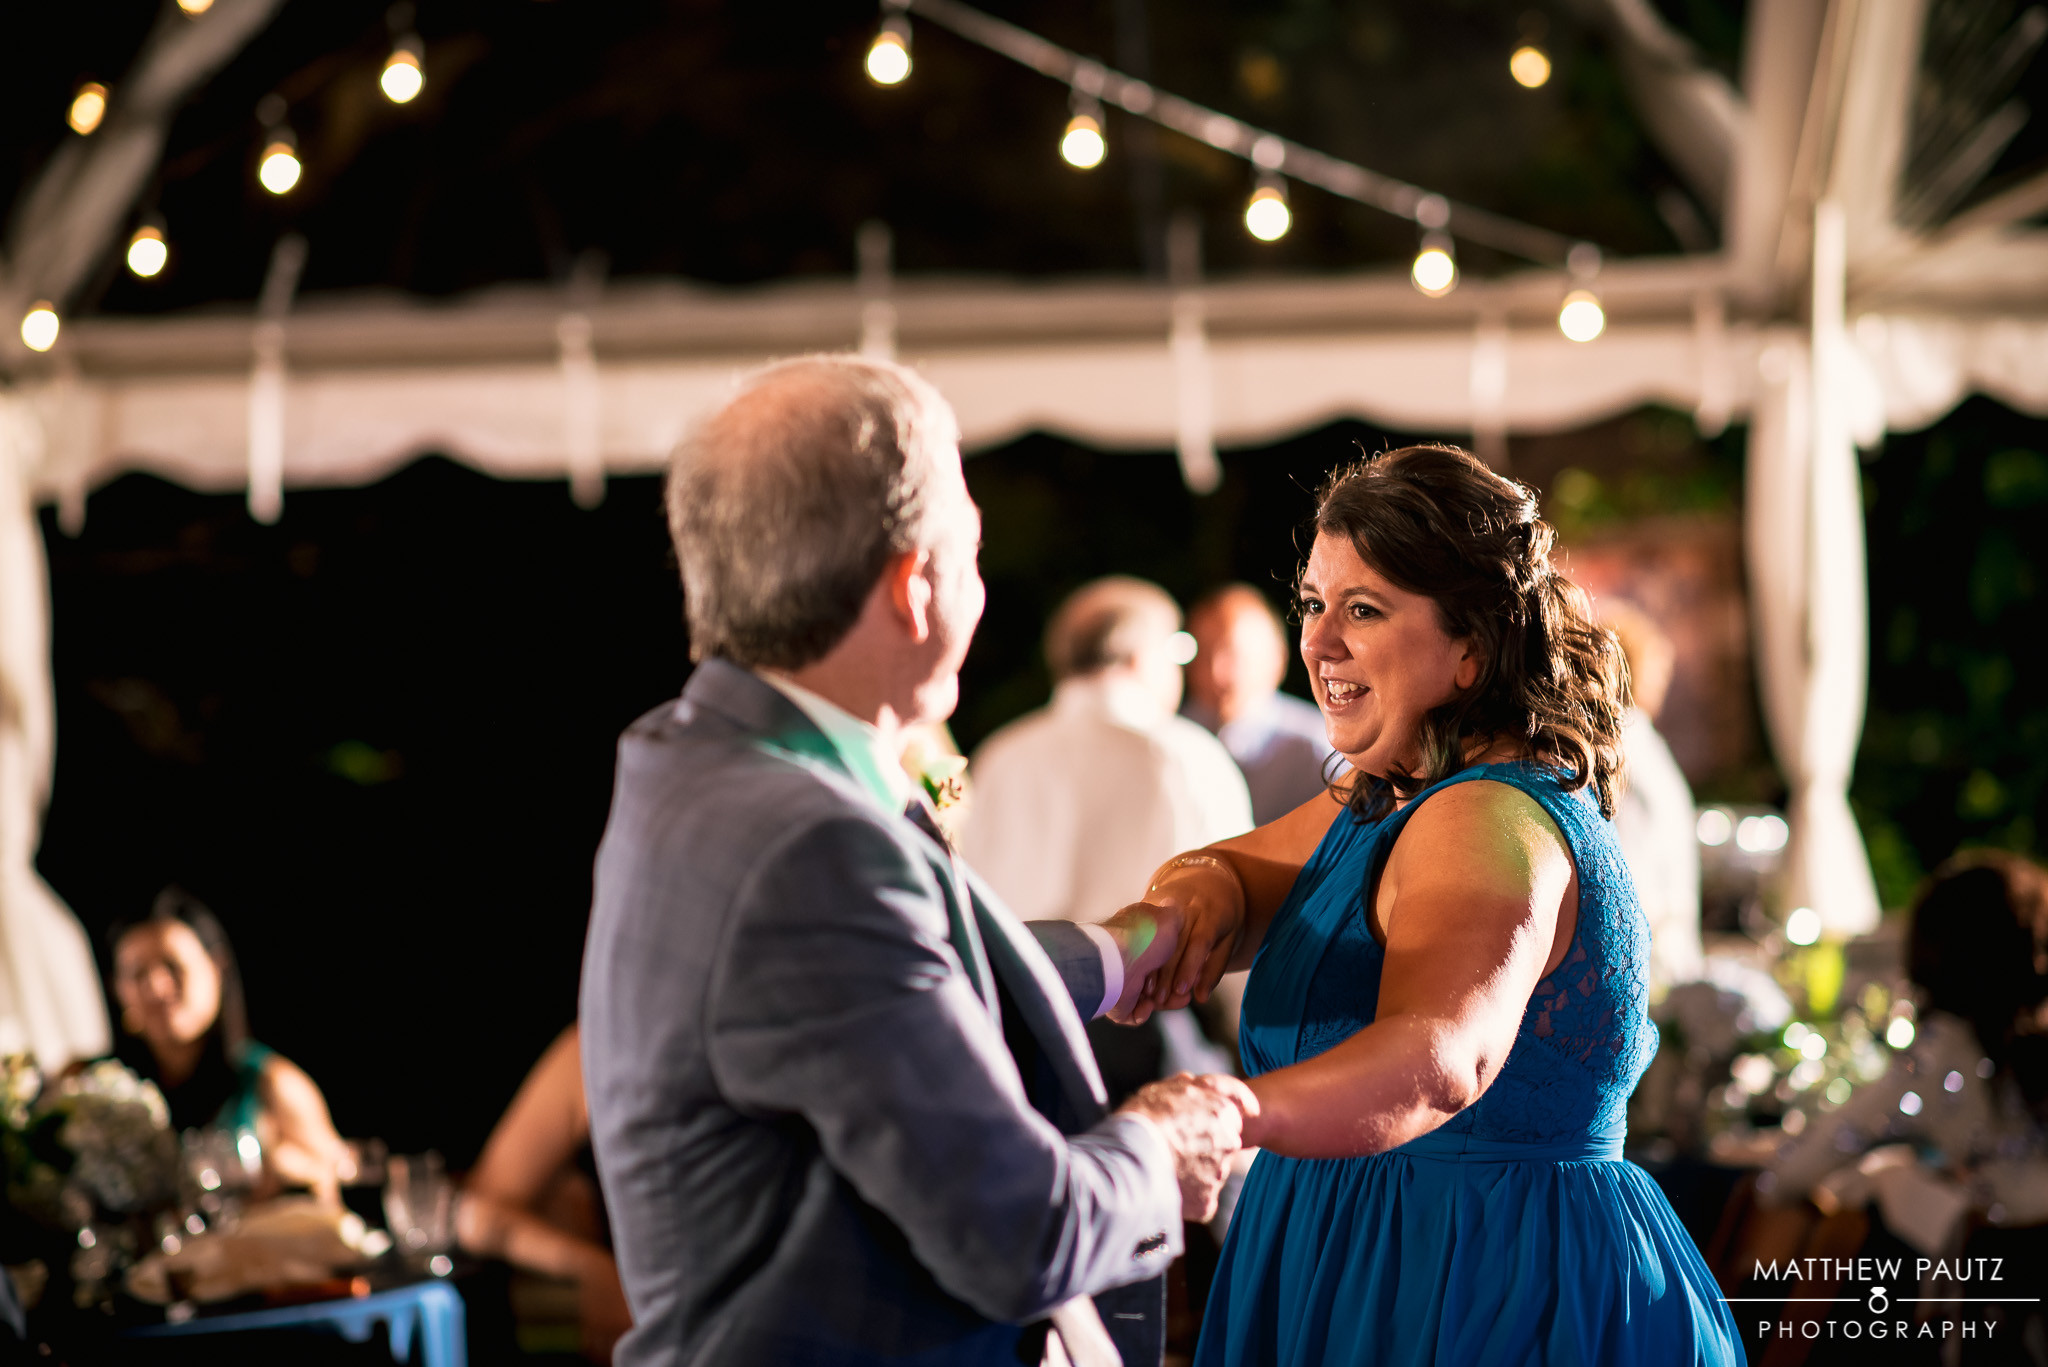 Whitney & Brandon had a high energy group of family & friends that packed the dance floor all night.